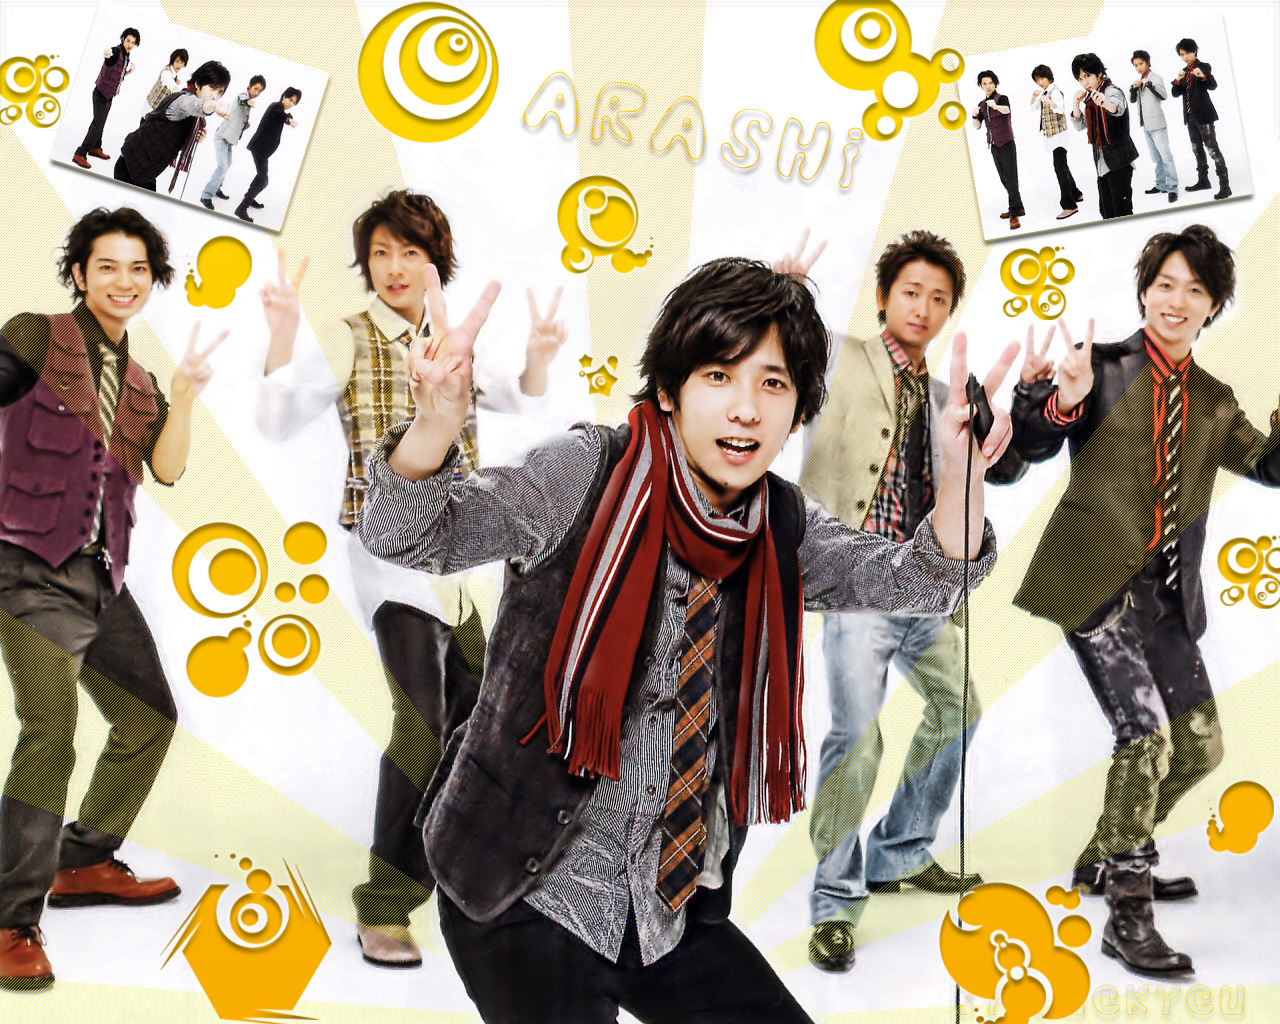 http://images5.fanpop.com/image/photos/26700000/Arashi-Nino-arashi-26741425-1280-1024.jpg